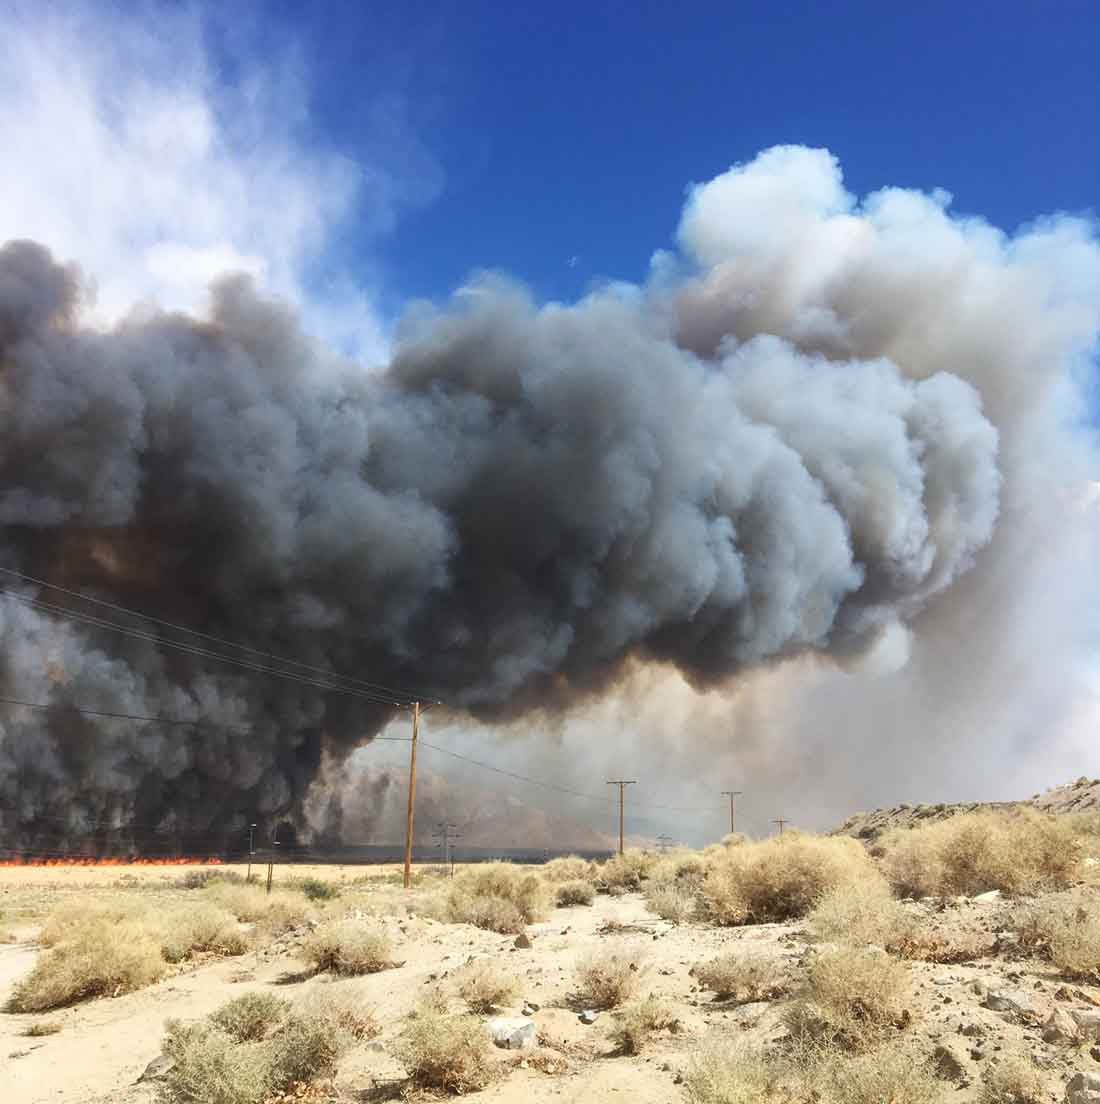 Moffat Fire burns hundreds of acres north of Lone Pine, CA ...